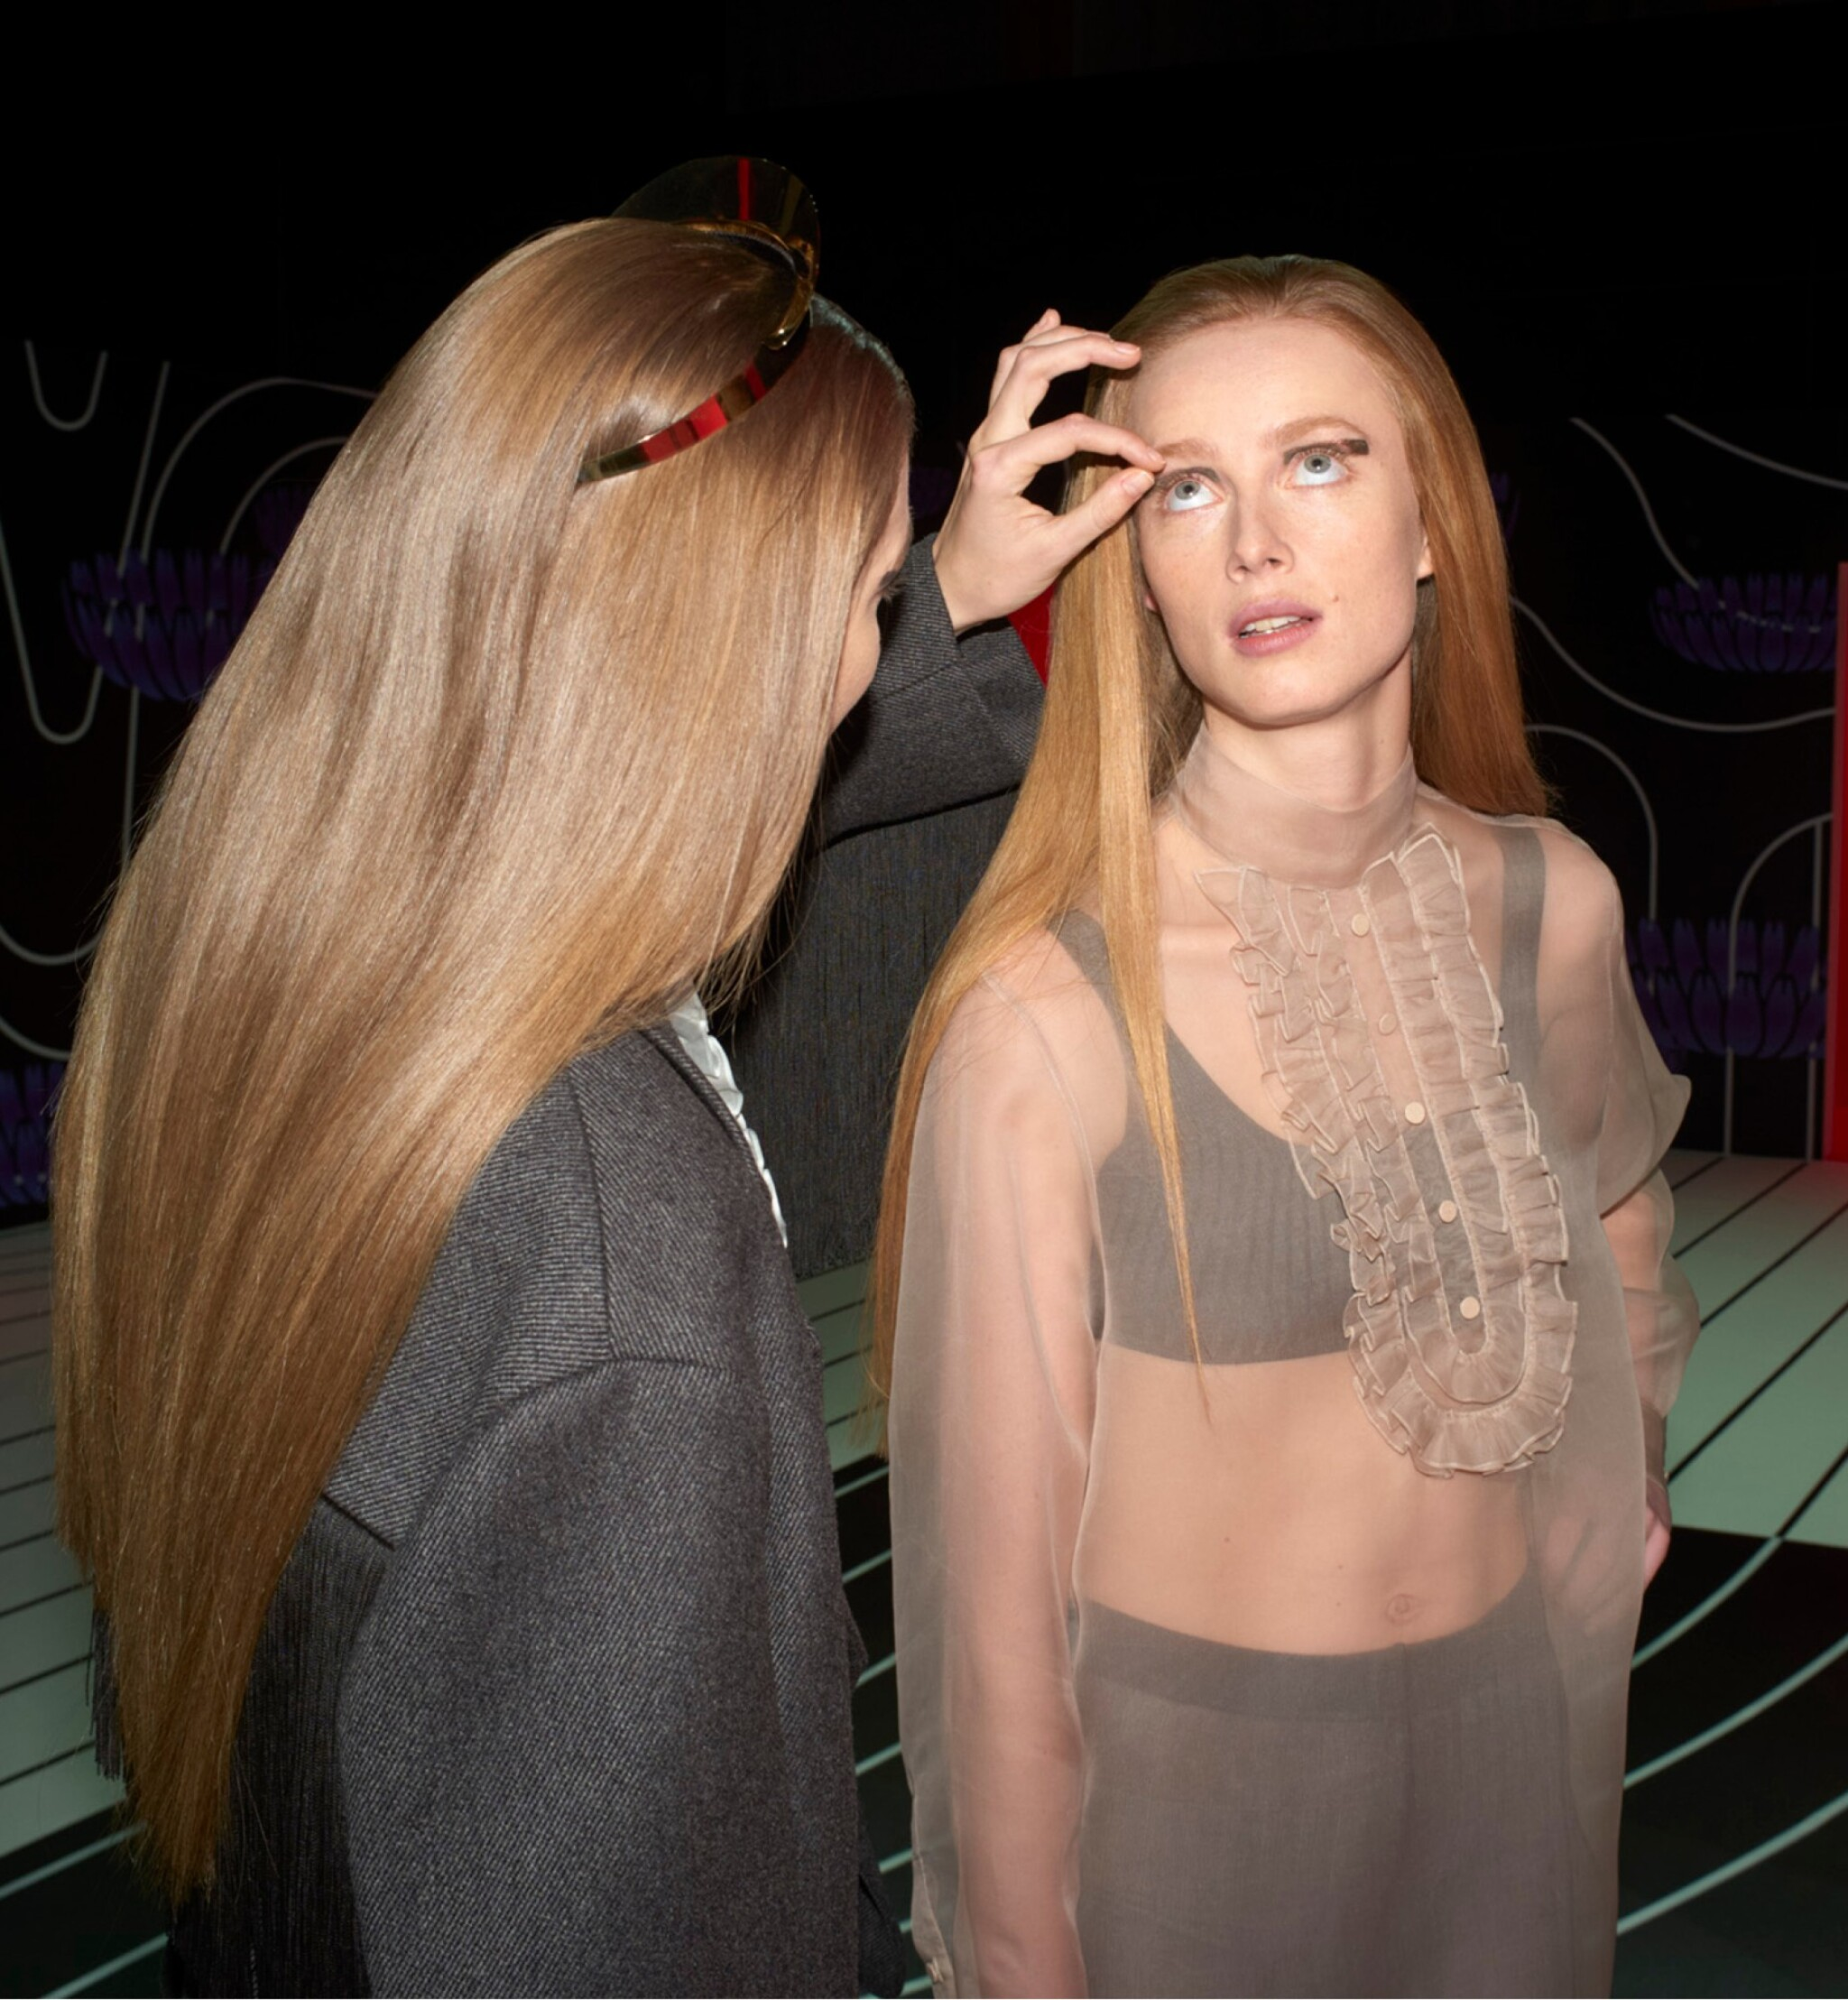 View full screen - View 1 of Lot 5. DANIEL ARNOLD    PRE-SHOW PHOTOGRAPHS OF GIGI HADID, RIANNE VAN ROMPAEY AND KAIA GERBER.